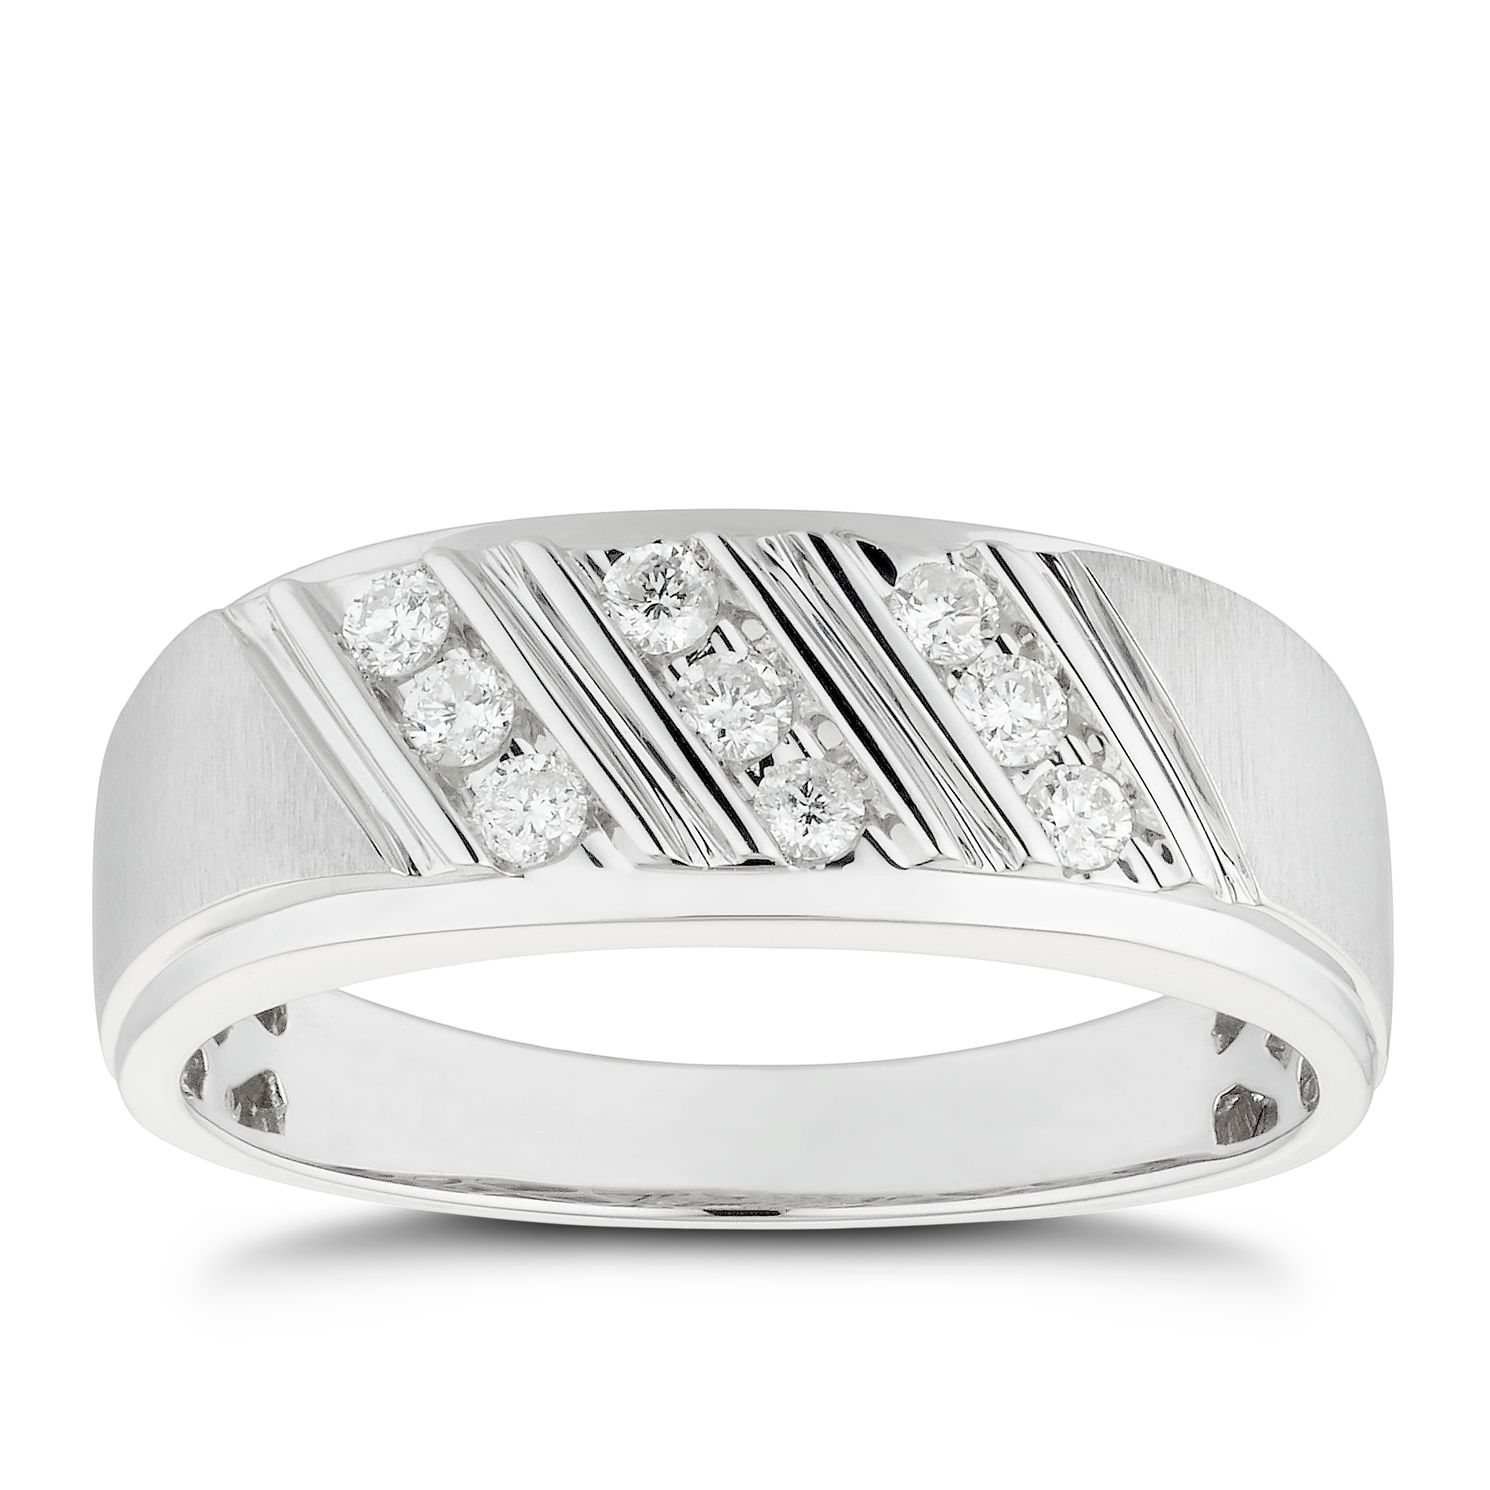 Men's 9ct White Gold 1/4ct Diamond Three Row Signet Ring - Product number 4705548